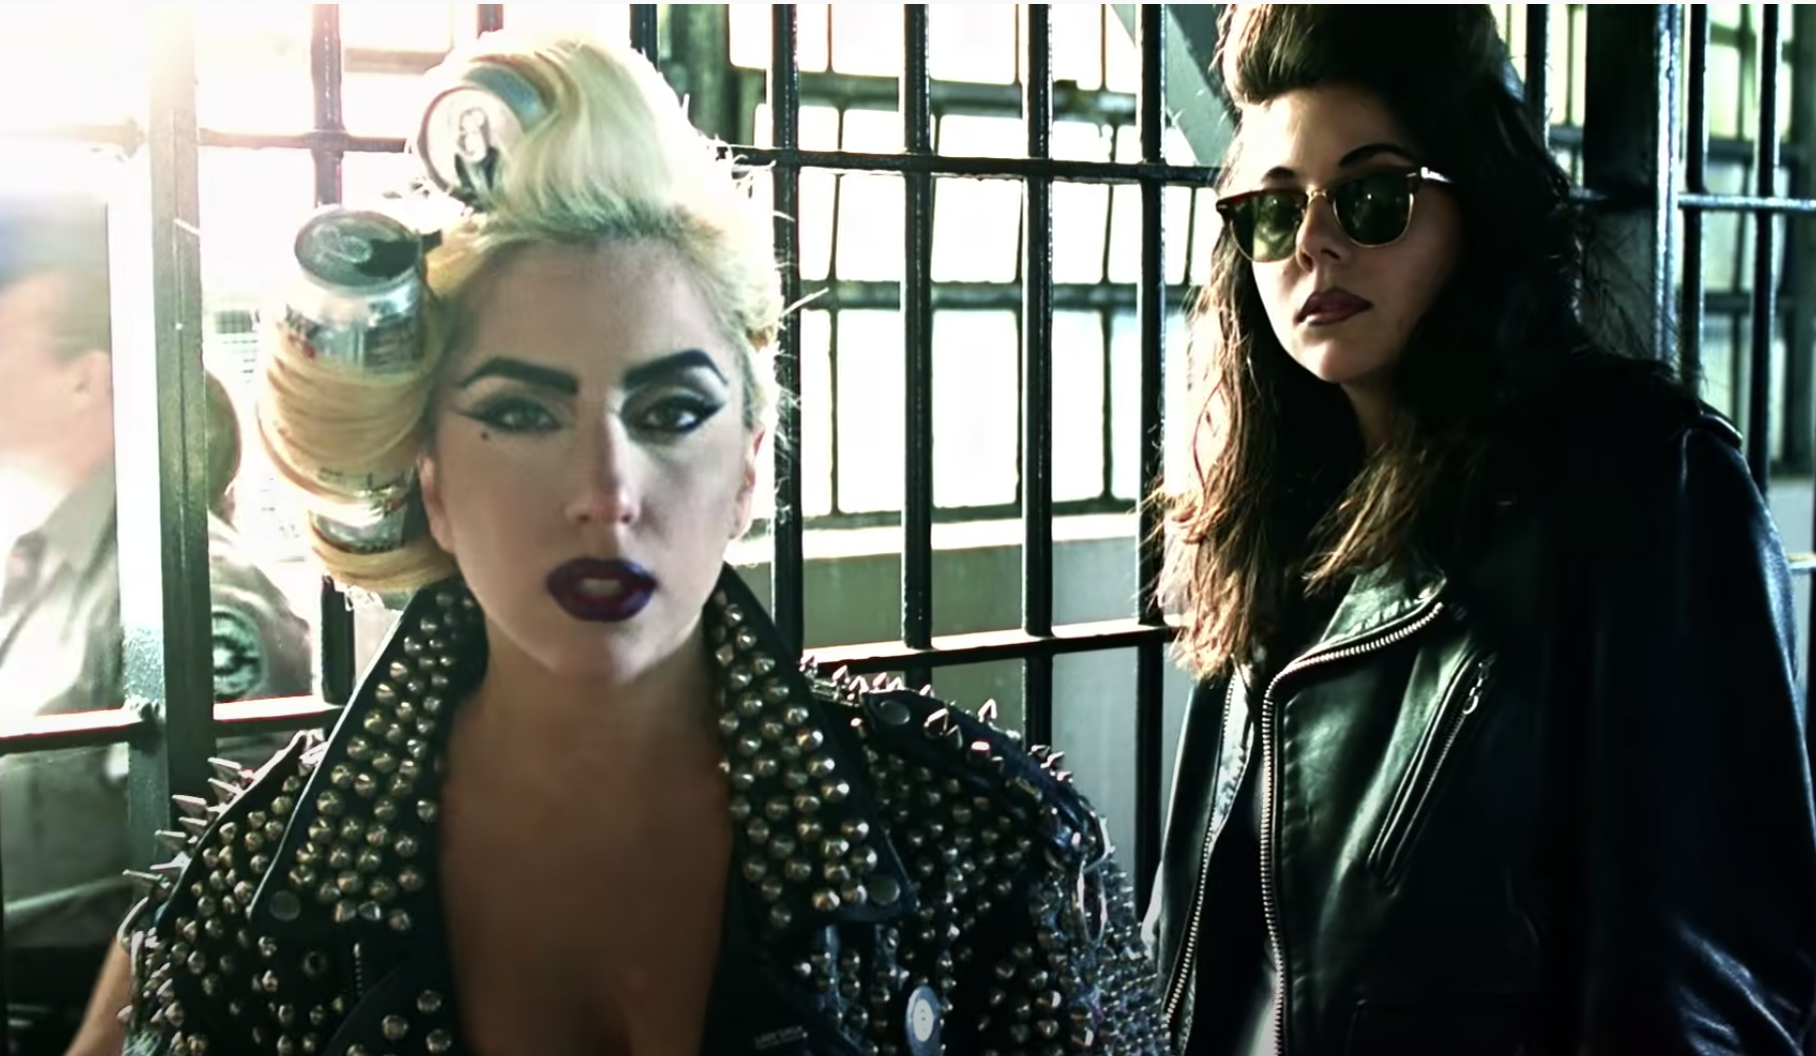 Lady Gaga looking at the camera from inside her prison cell while her sister stands behind her